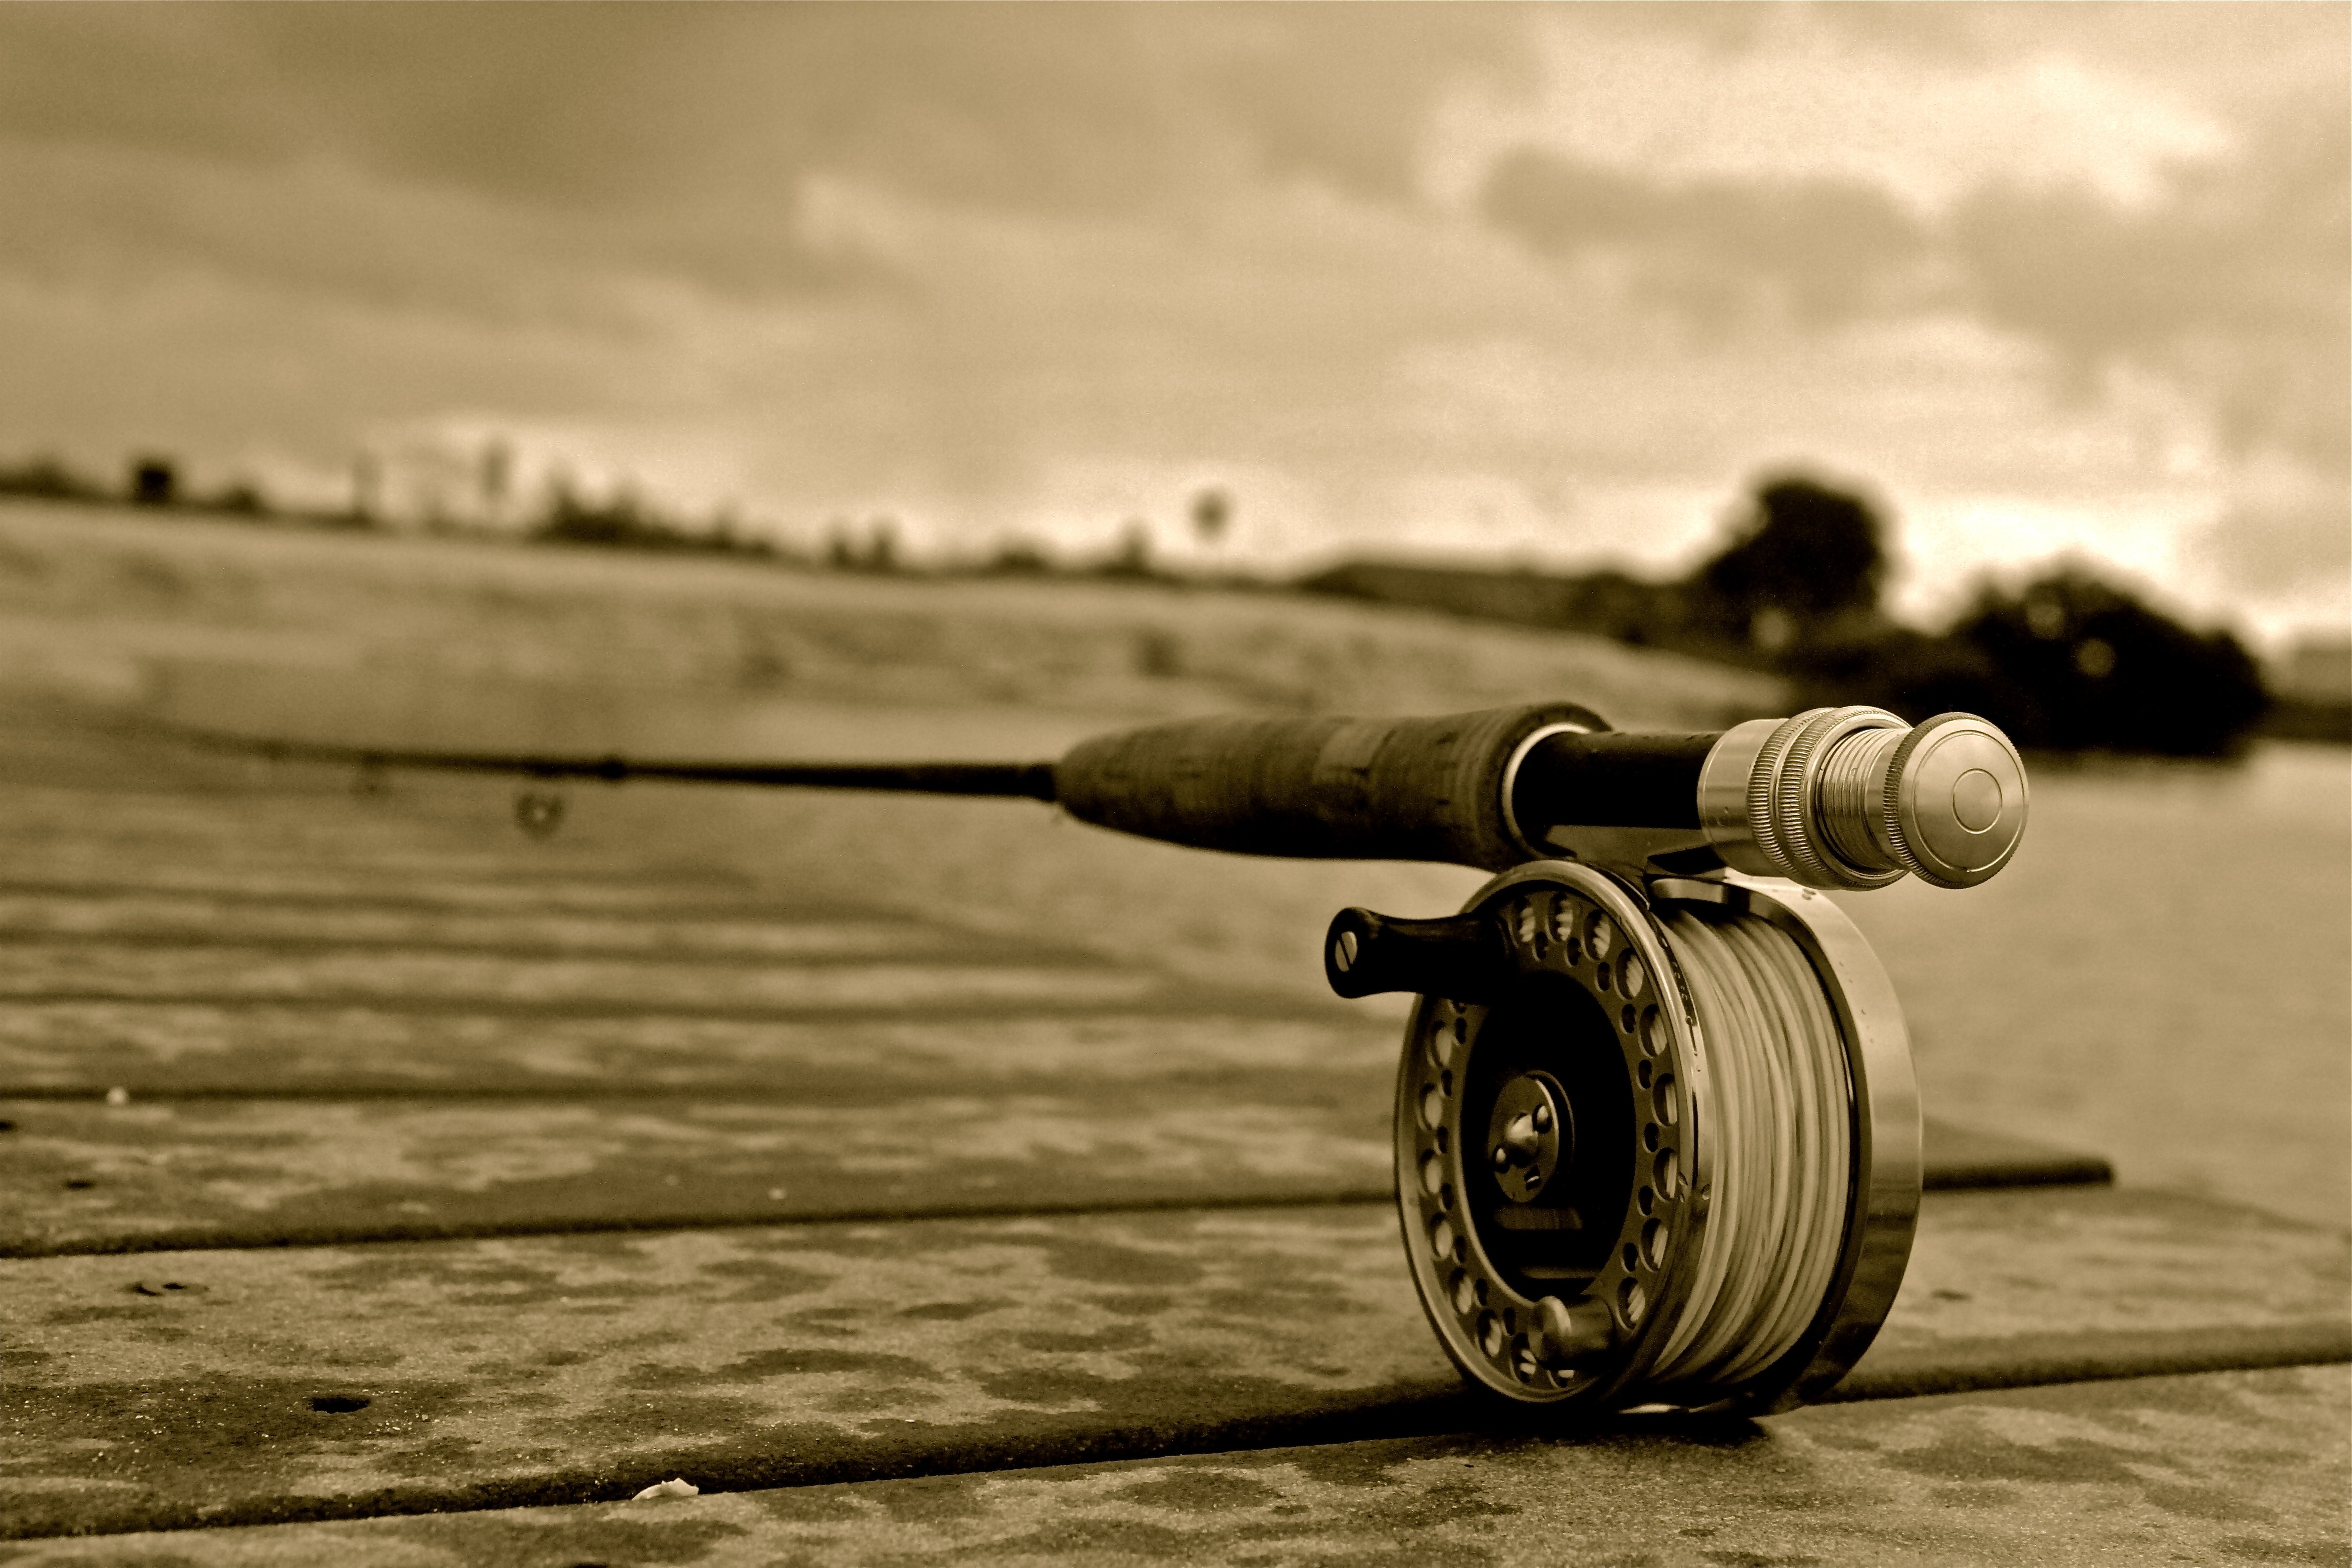 trout fly fishing wallpaper - photo #35